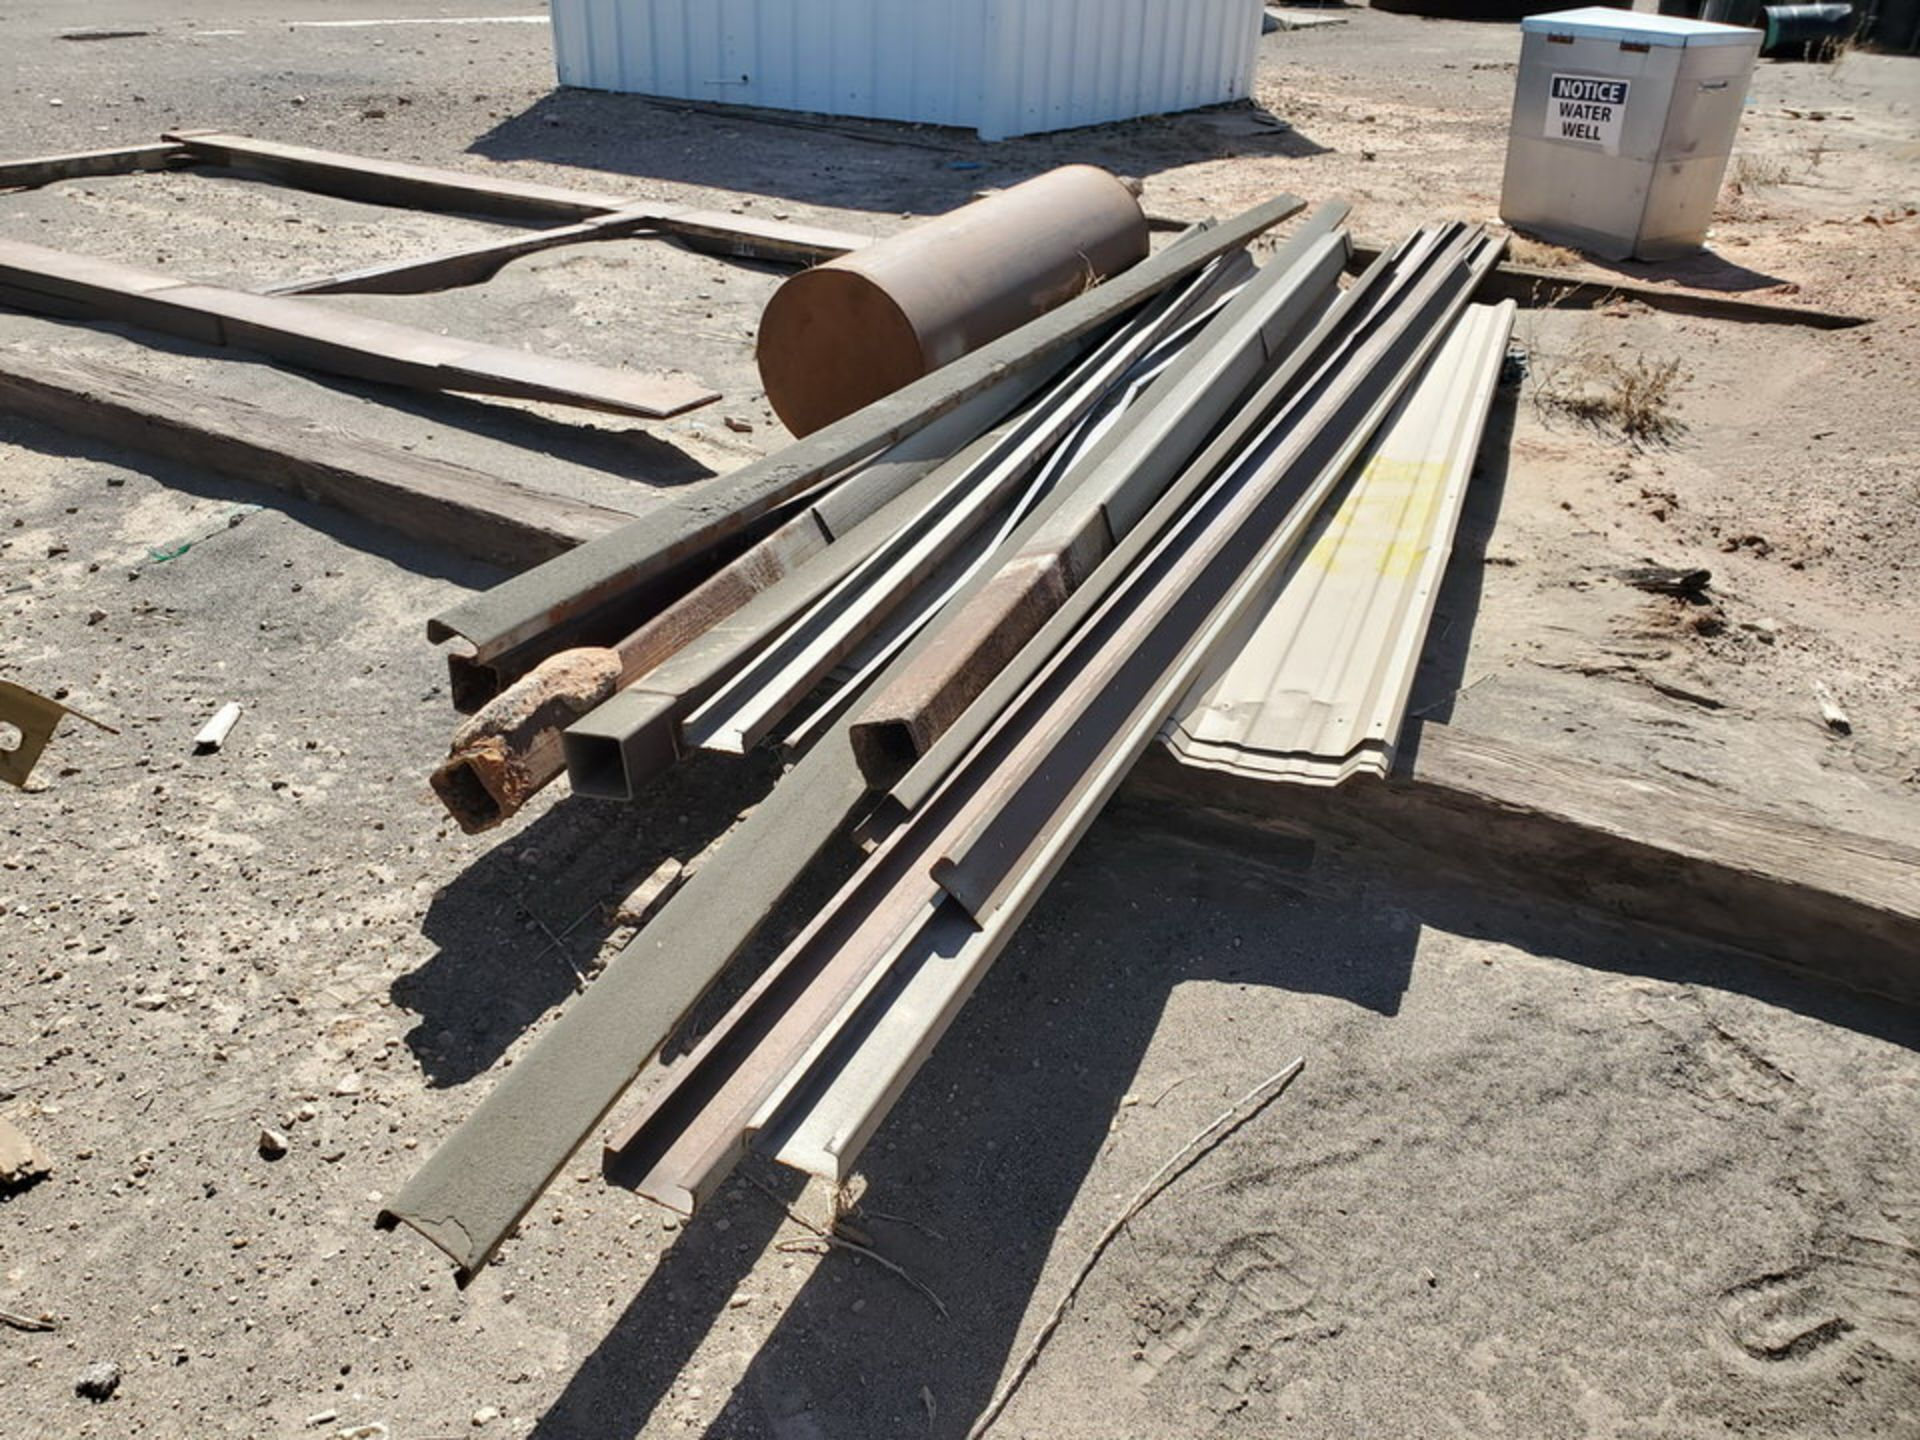 Assorted Material To Include But Not Limited To: Roller, Siding, Channel, Sq. Tubing, etc. - Image 2 of 10